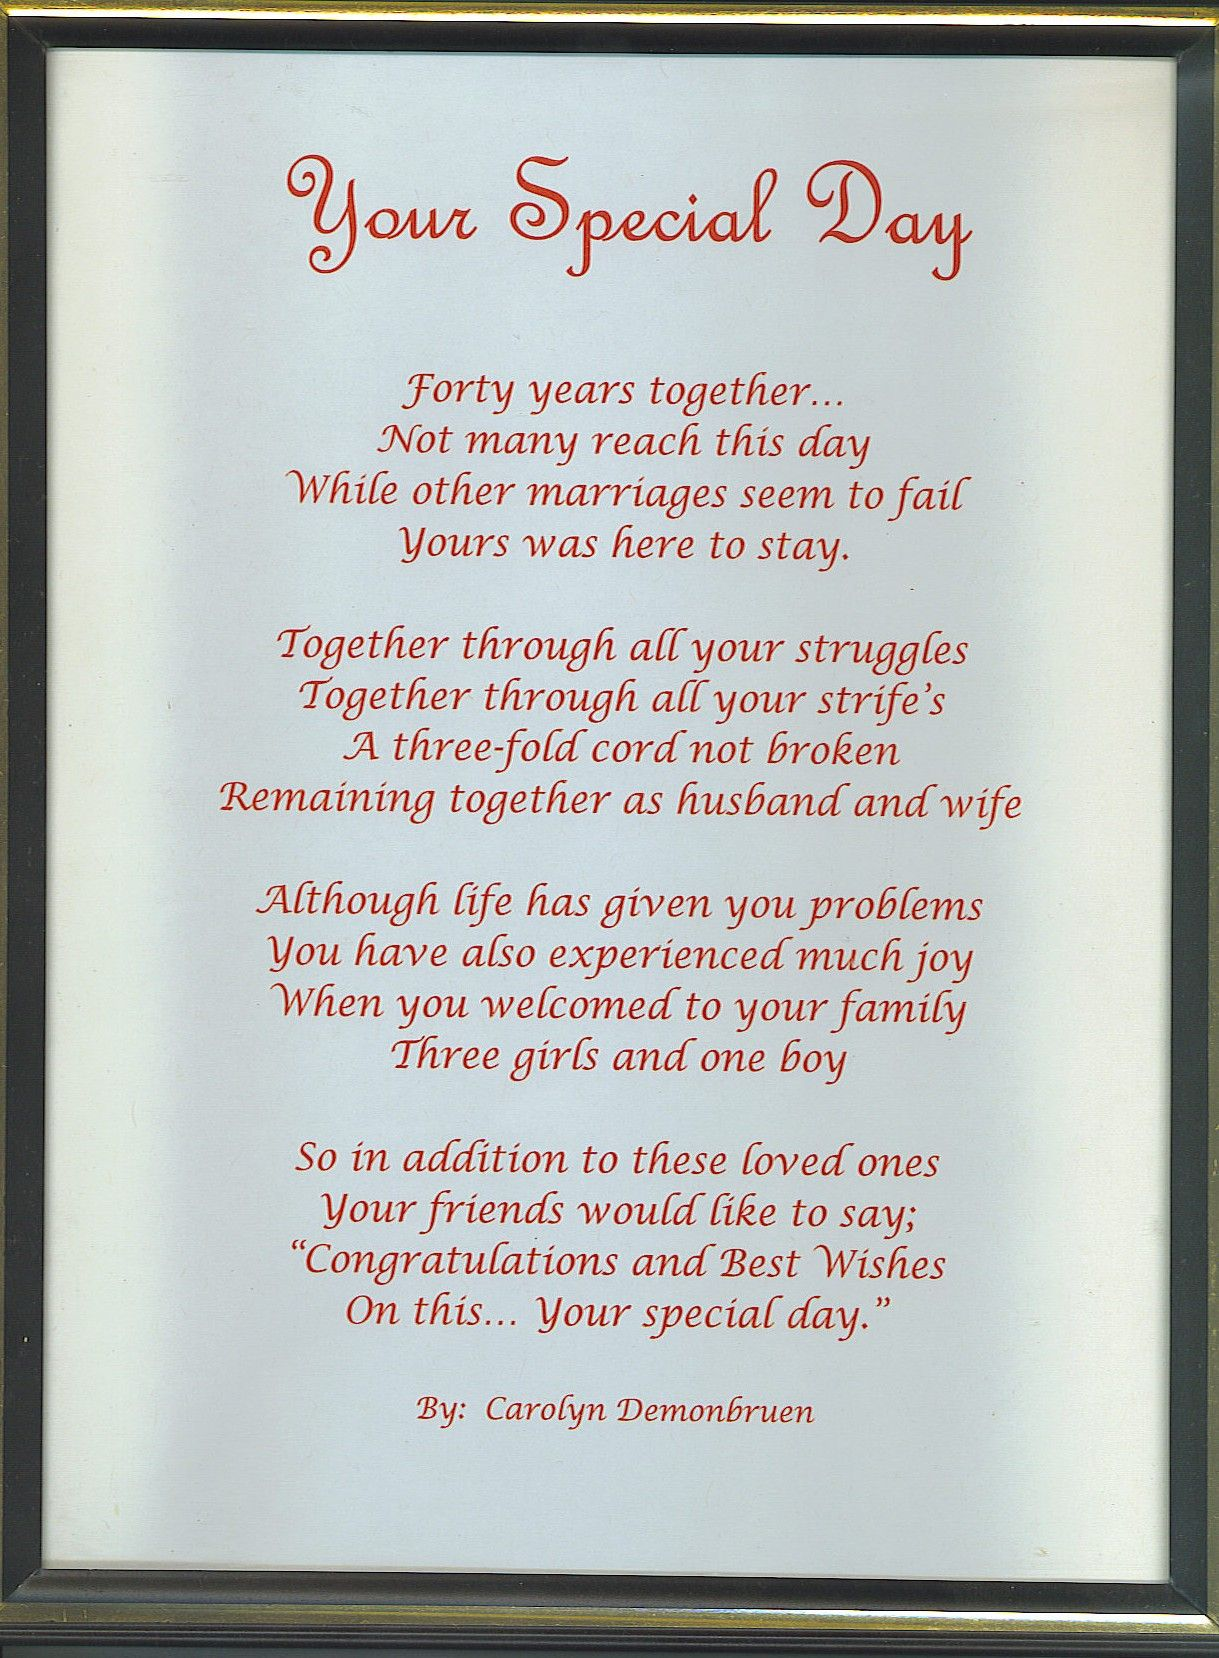 Anniversary Poems For Parents Eta If You Do Use This One And Tweak It Its Worth Noting That The